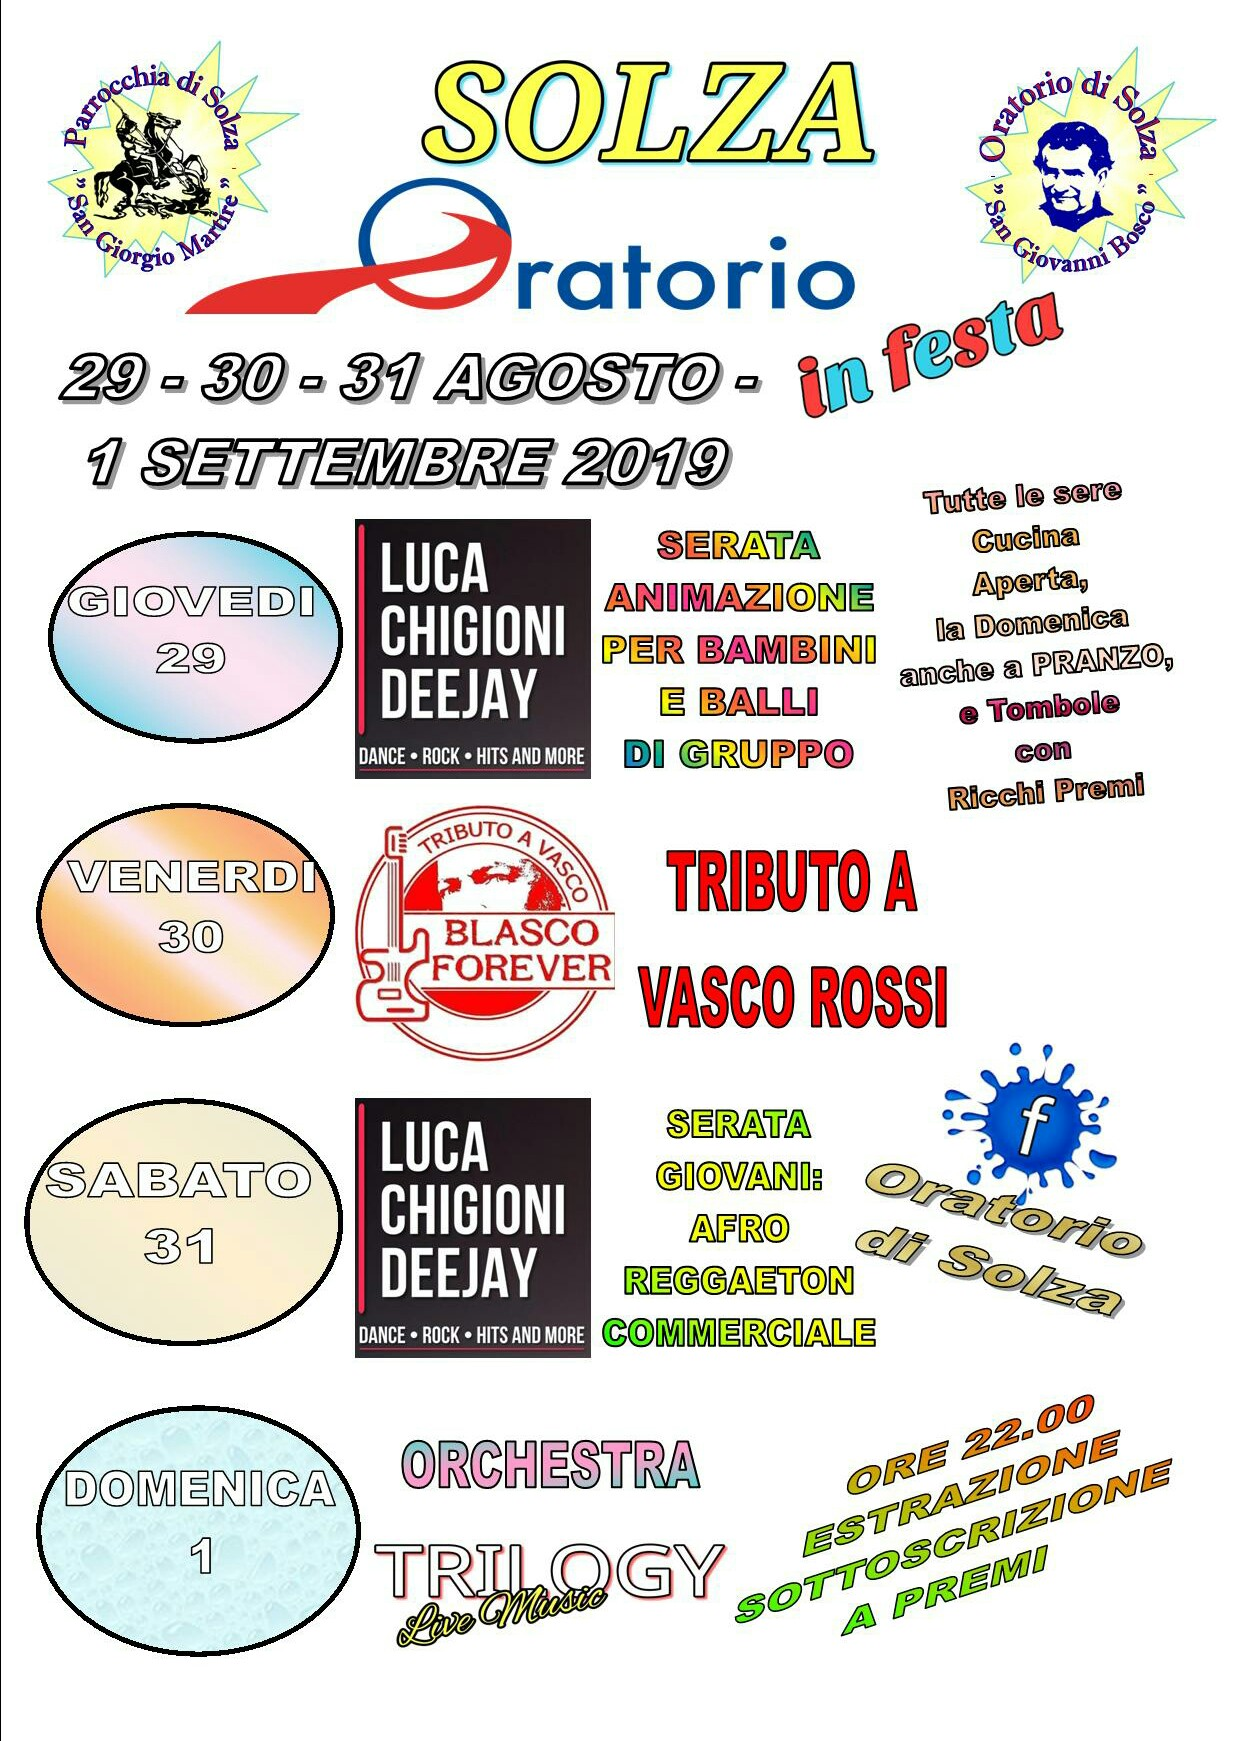 Oratorio in Festa - Solza